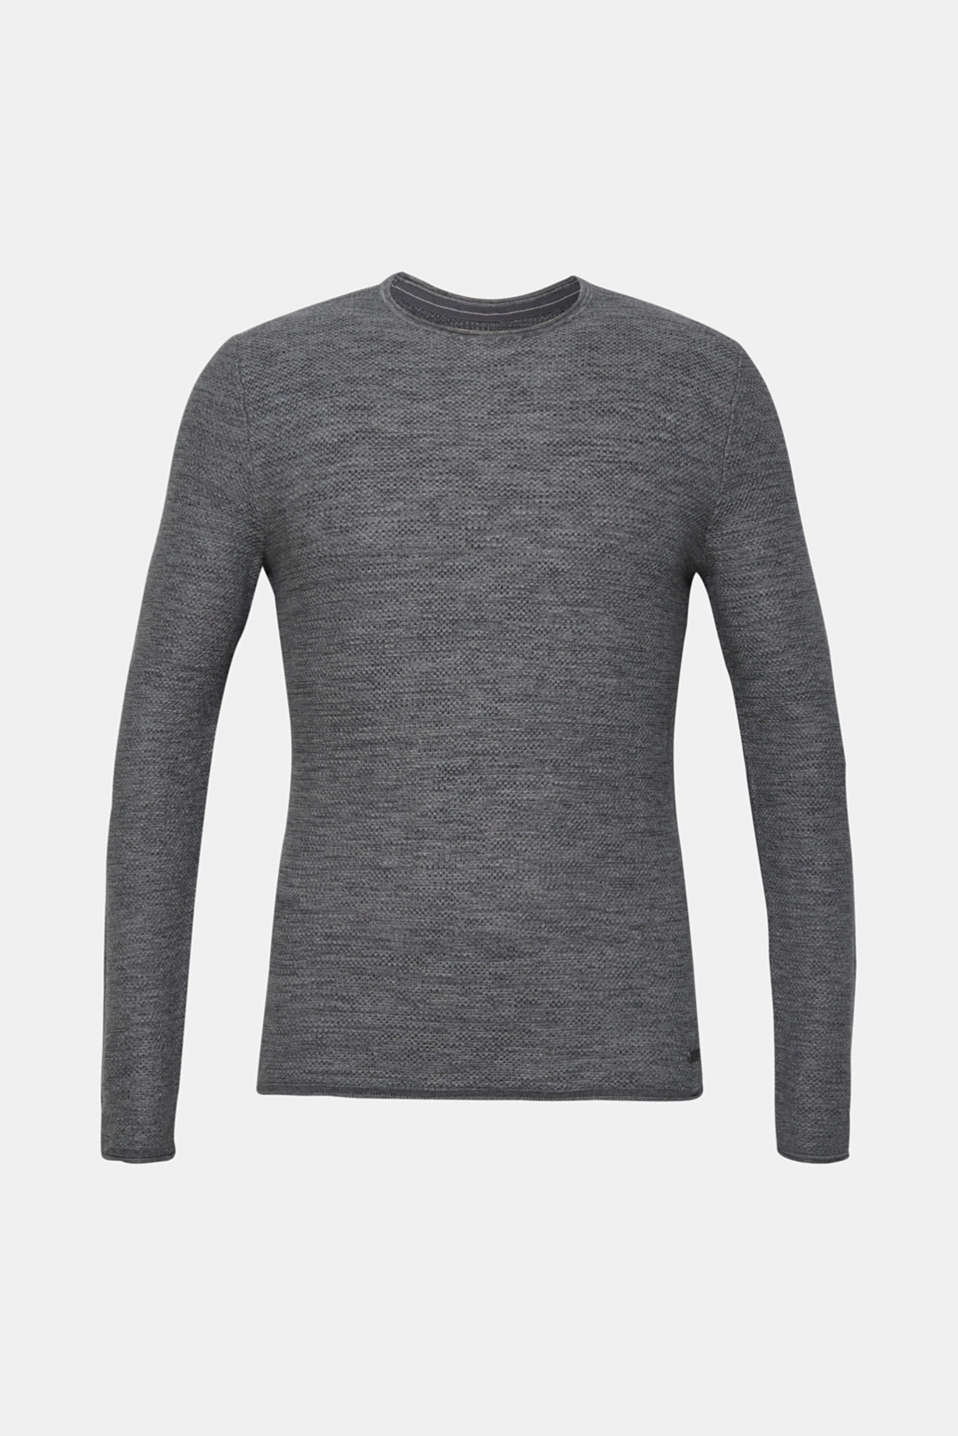 Textured jumper made of 100% cotton, MEDIUM GREY, detail image number 5